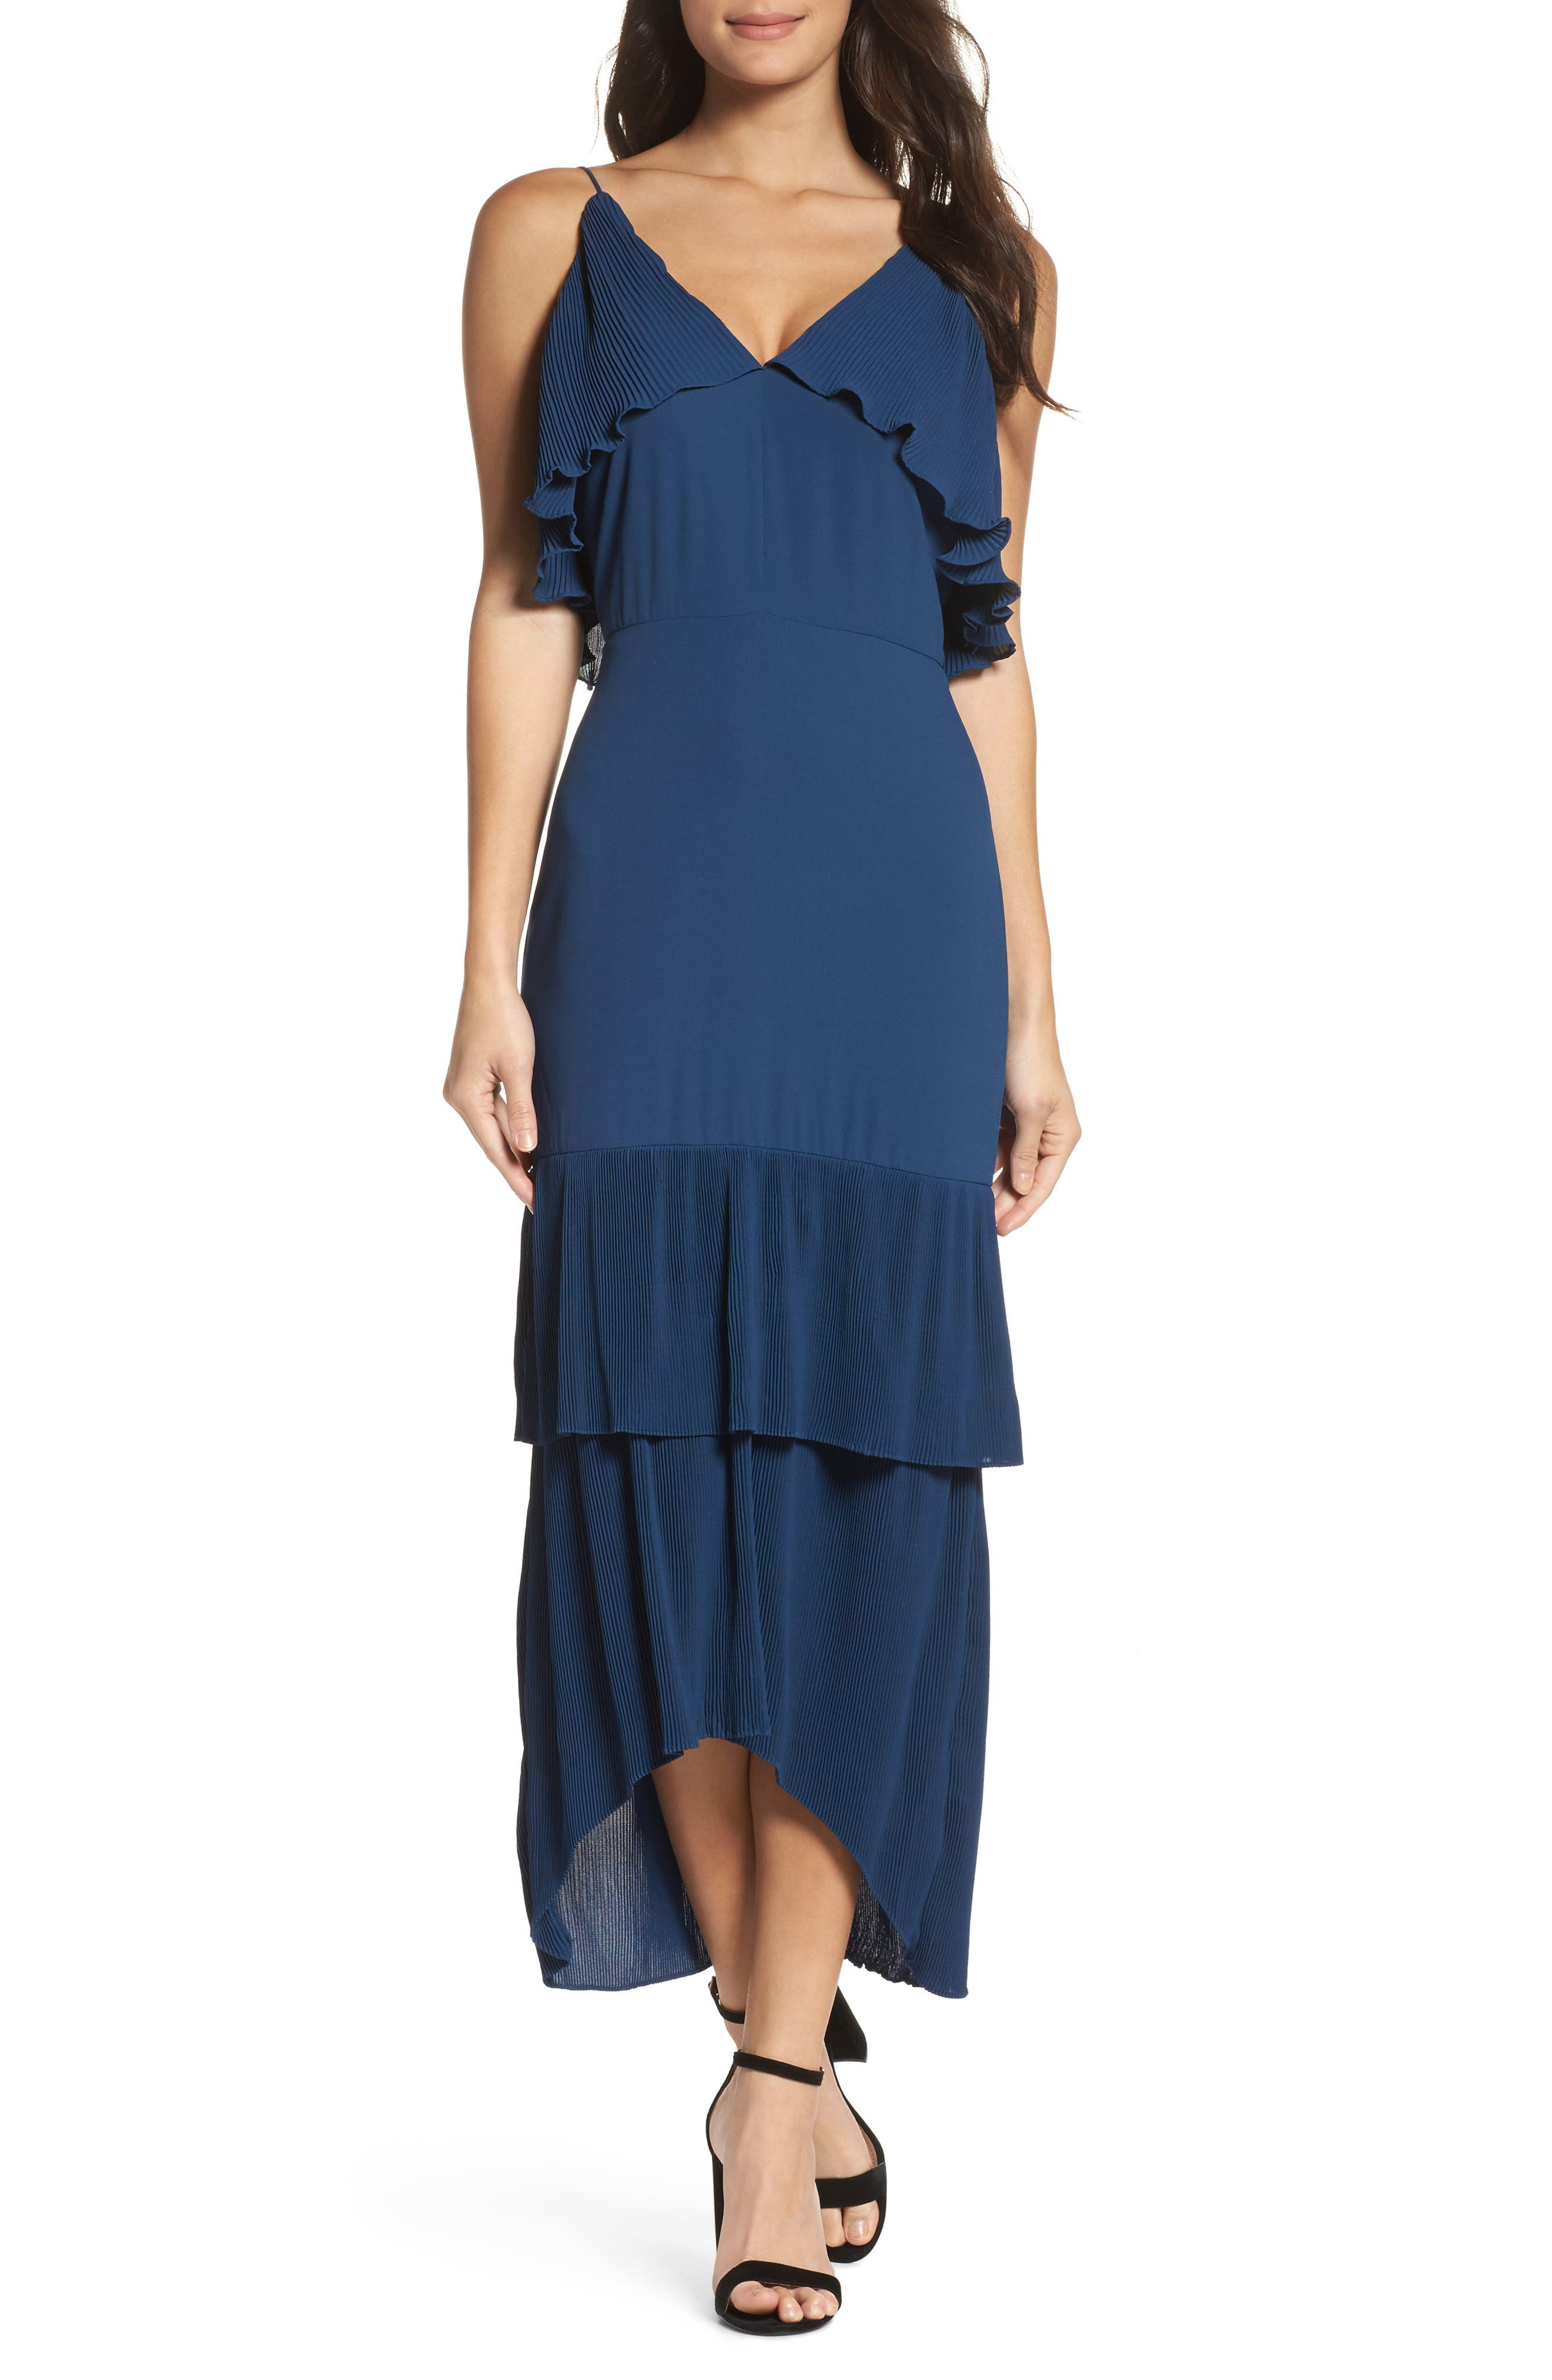 Kate Pleated Ruffle Midi Dress,                             Main thumbnail 1, color,                             415